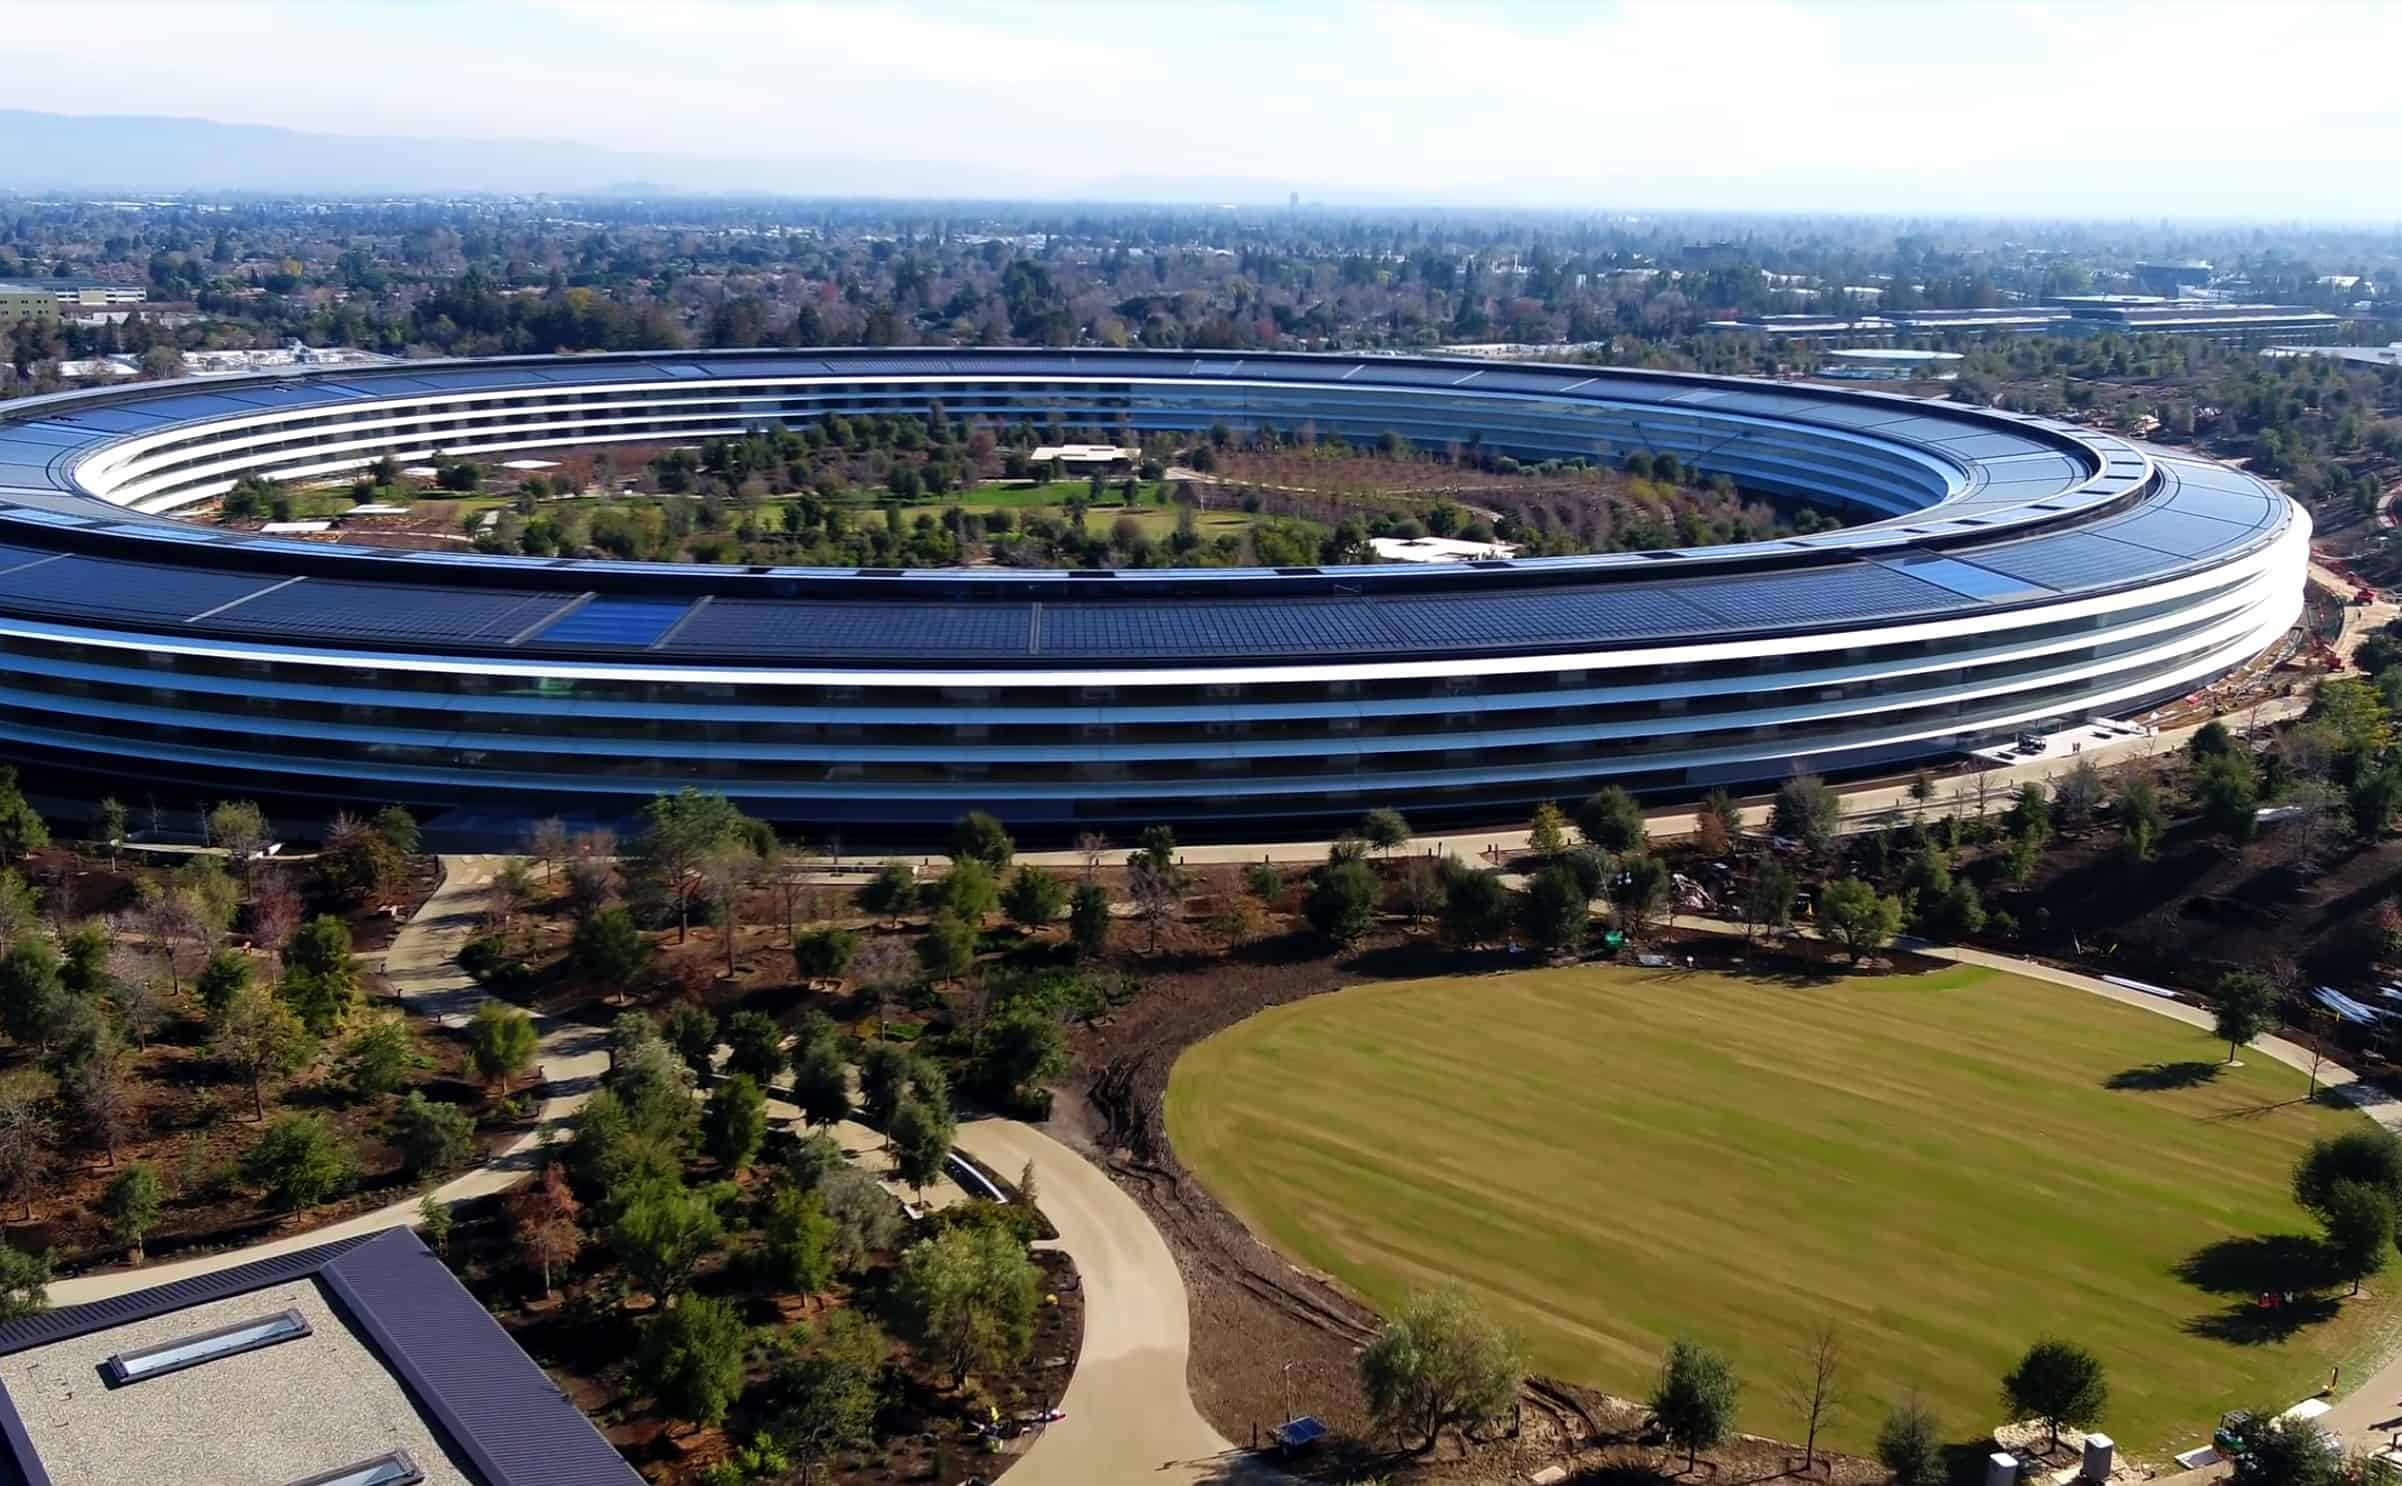 Video tour dives deep inside Apple Park